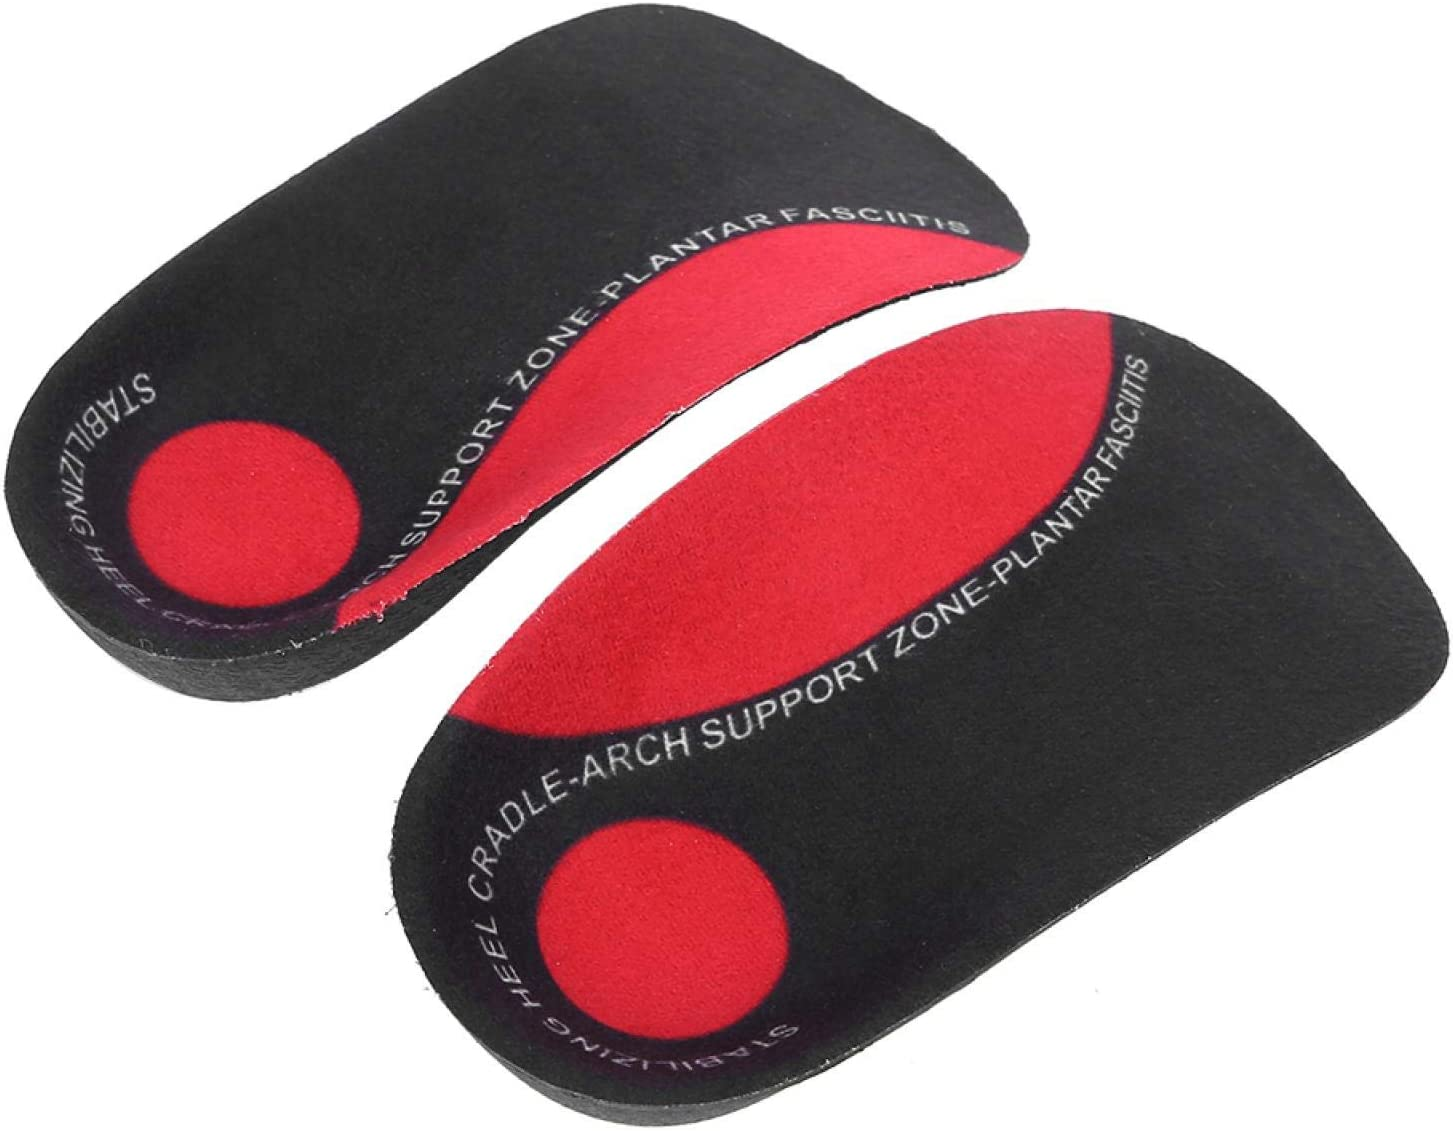 Orthotics Orthopedic Pads Unisex Conventient Supp Foot Flat San Francisco Branded goods Mall Arch